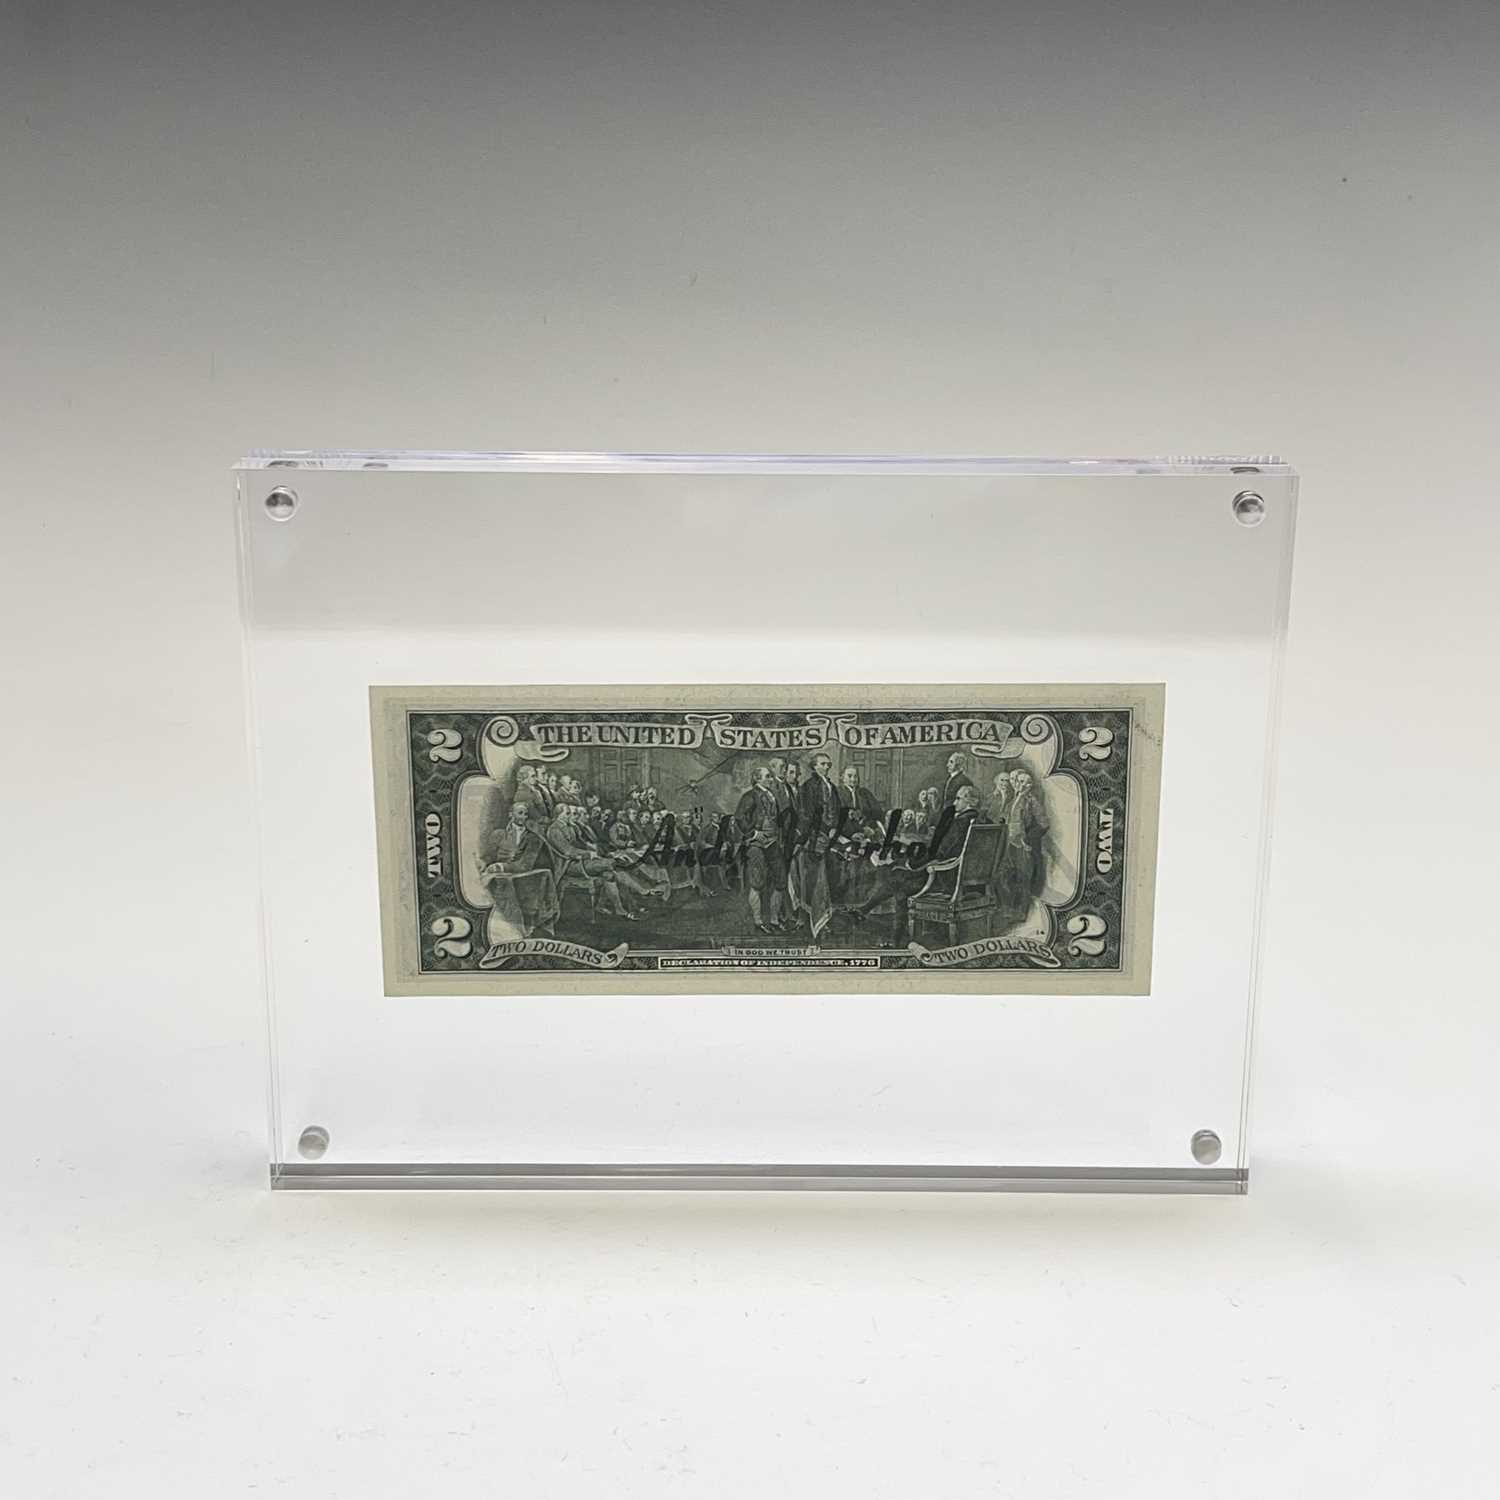 After Andy Warhol, a two-dollar banknote, bears signature, together with accompanying paperwork. - Image 2 of 10